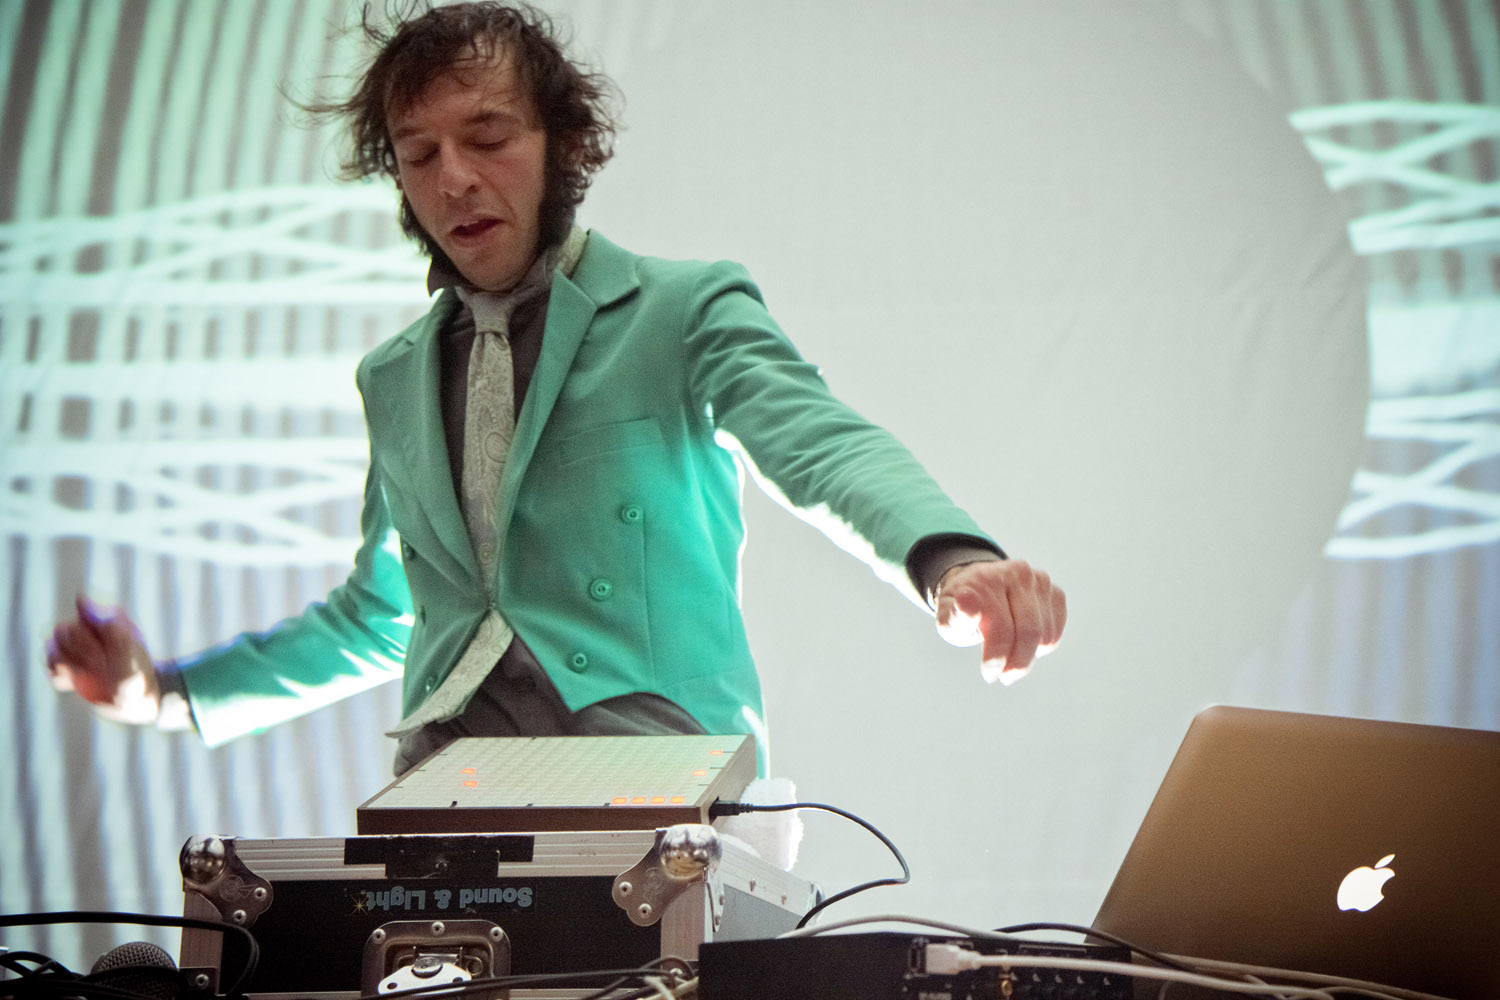 Daedelus goes against the clock